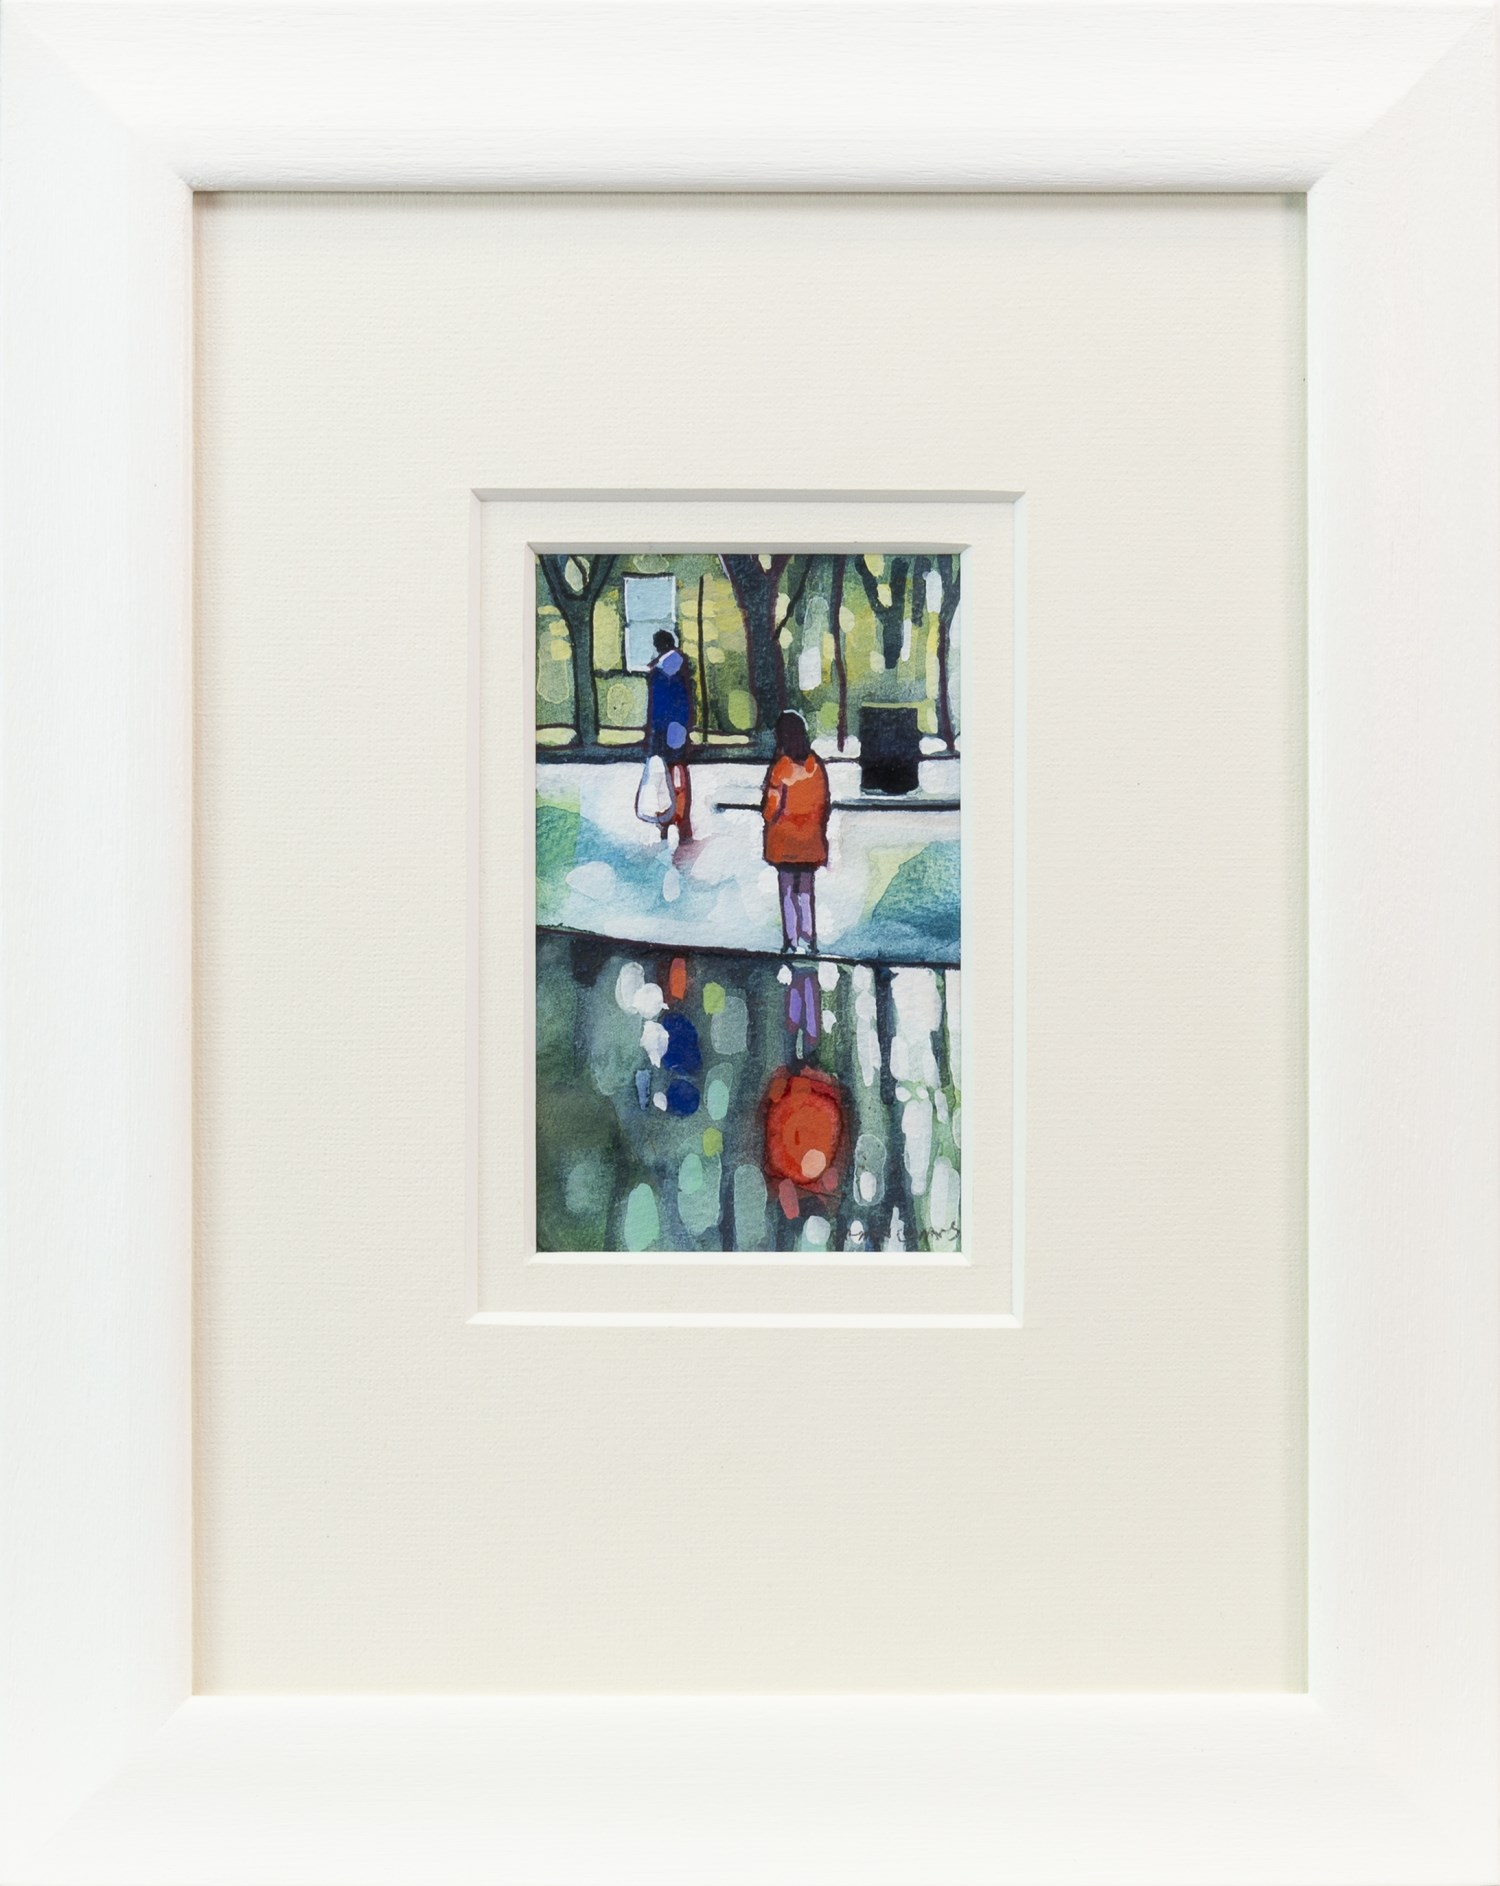 Lot 115 - REFLECTIONS IN RED, KELVINGROVE, A WATERCOLOUR BY BRYAN EVANS